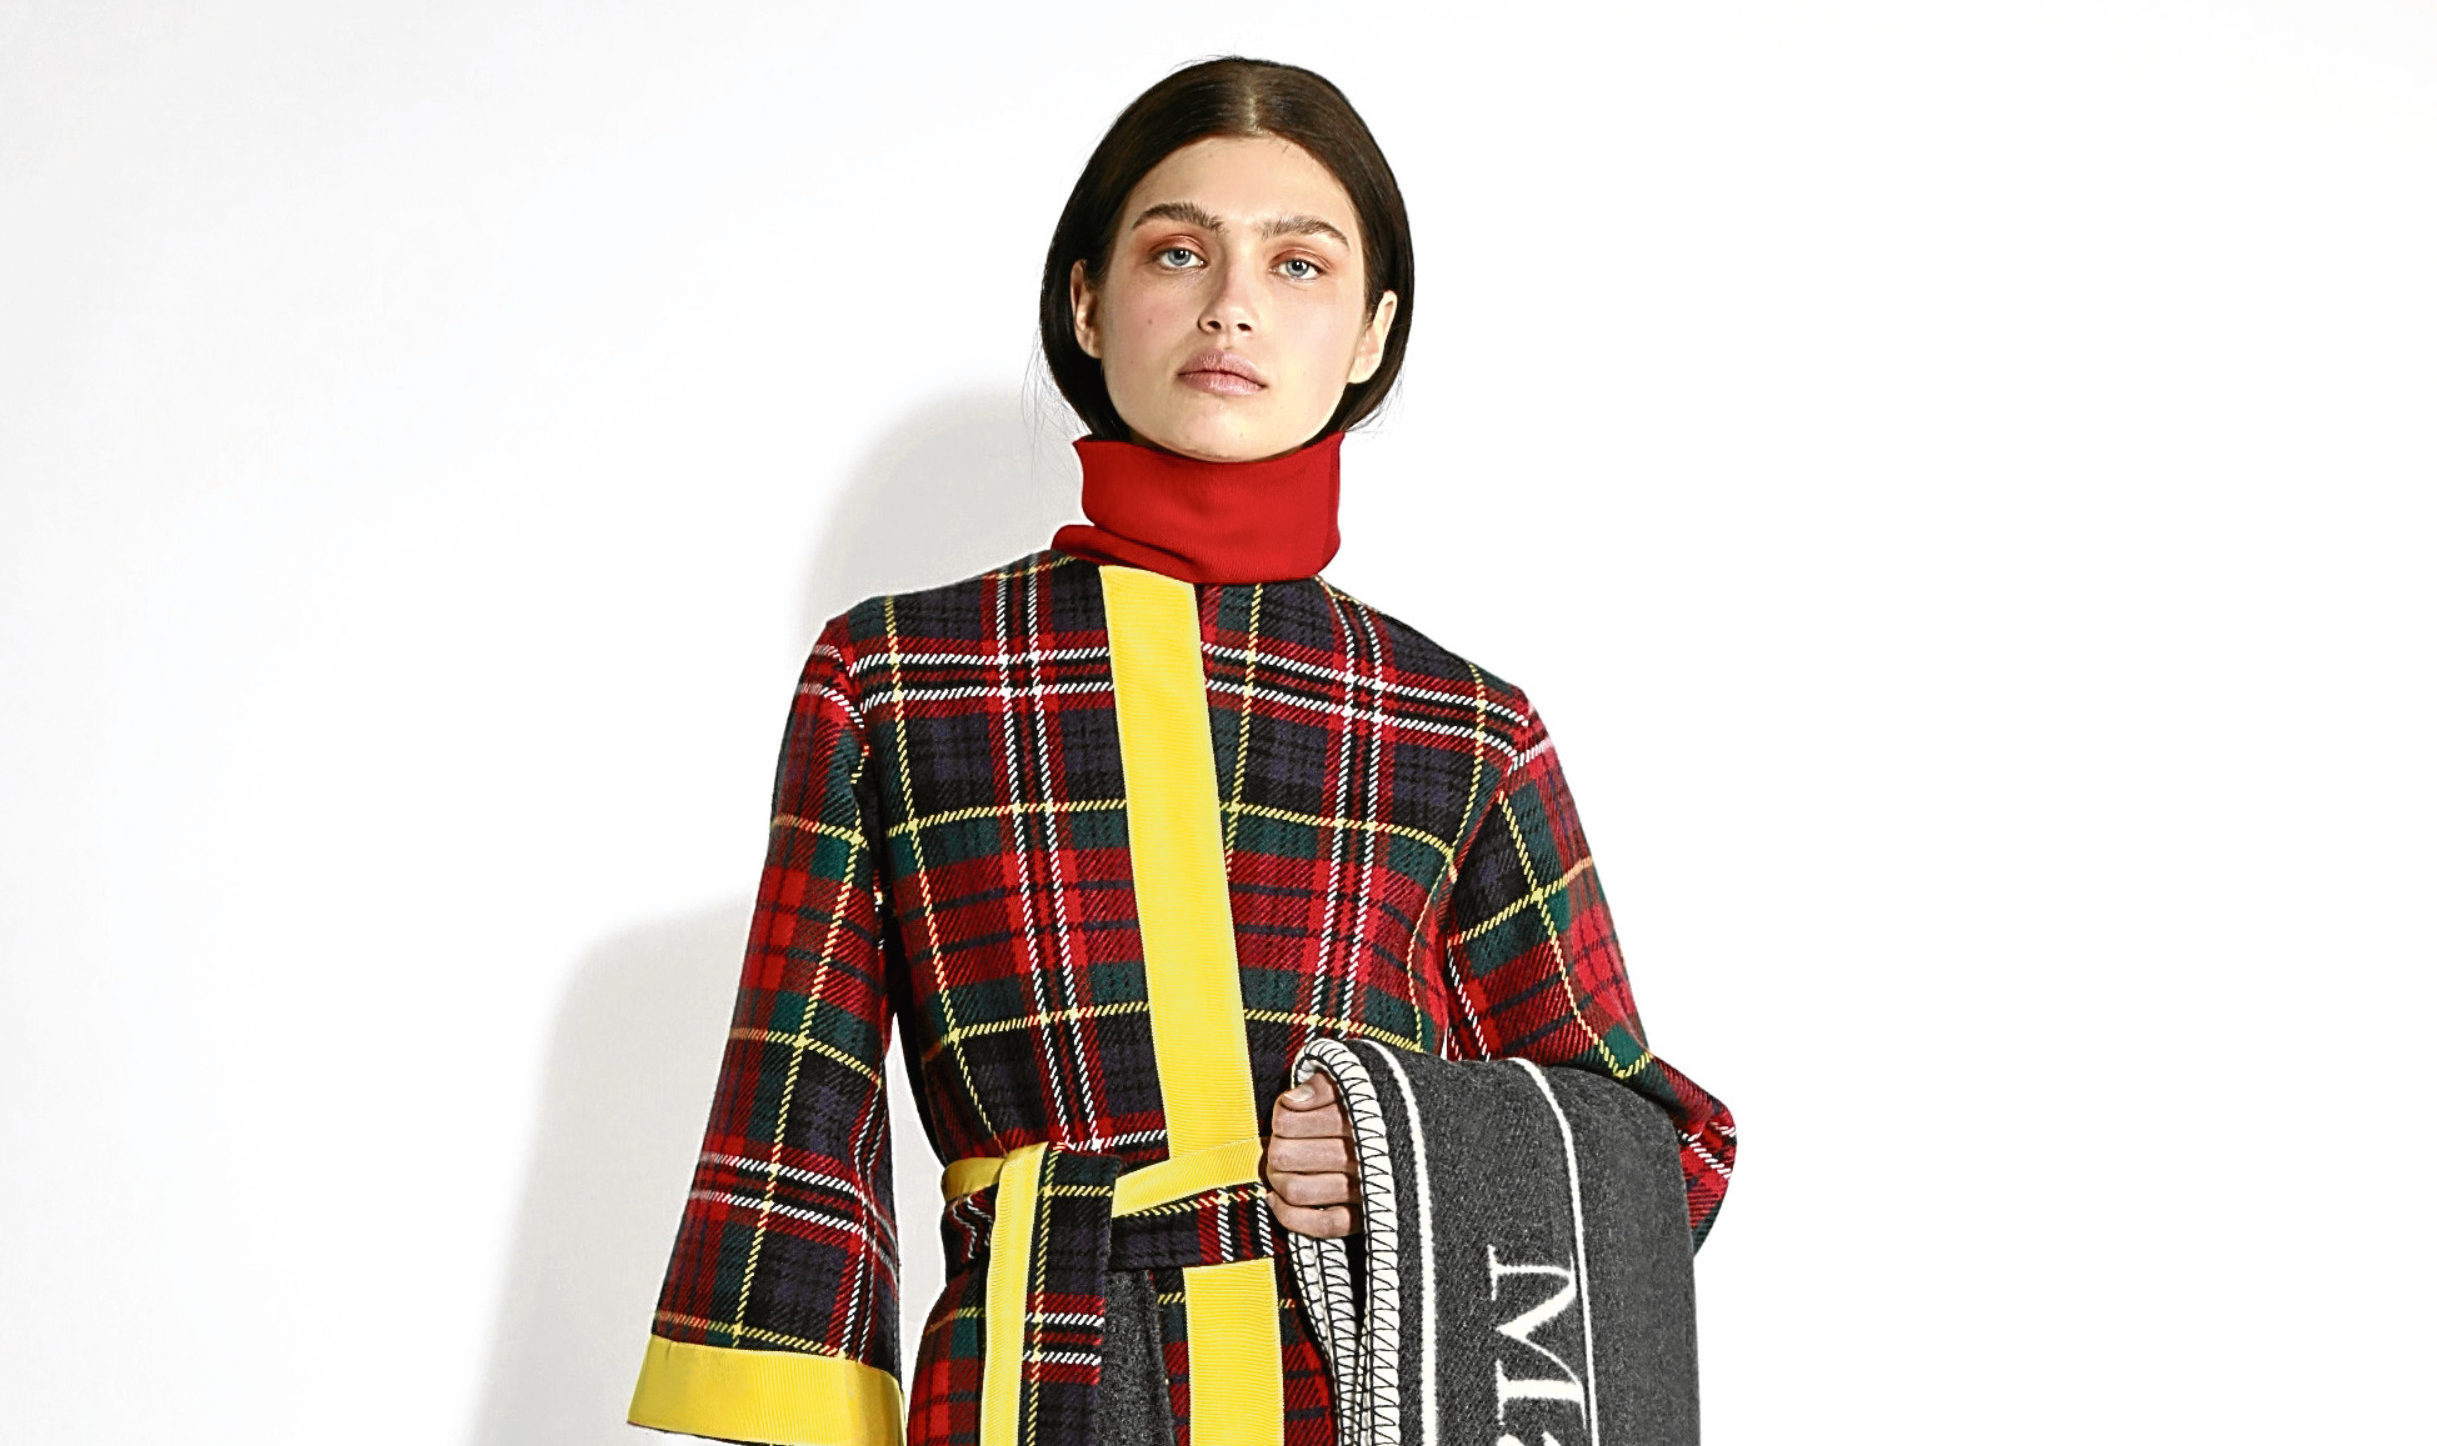 Johnstons of Elgin at London Fashion Week 2018  SUBMITTED from J o E